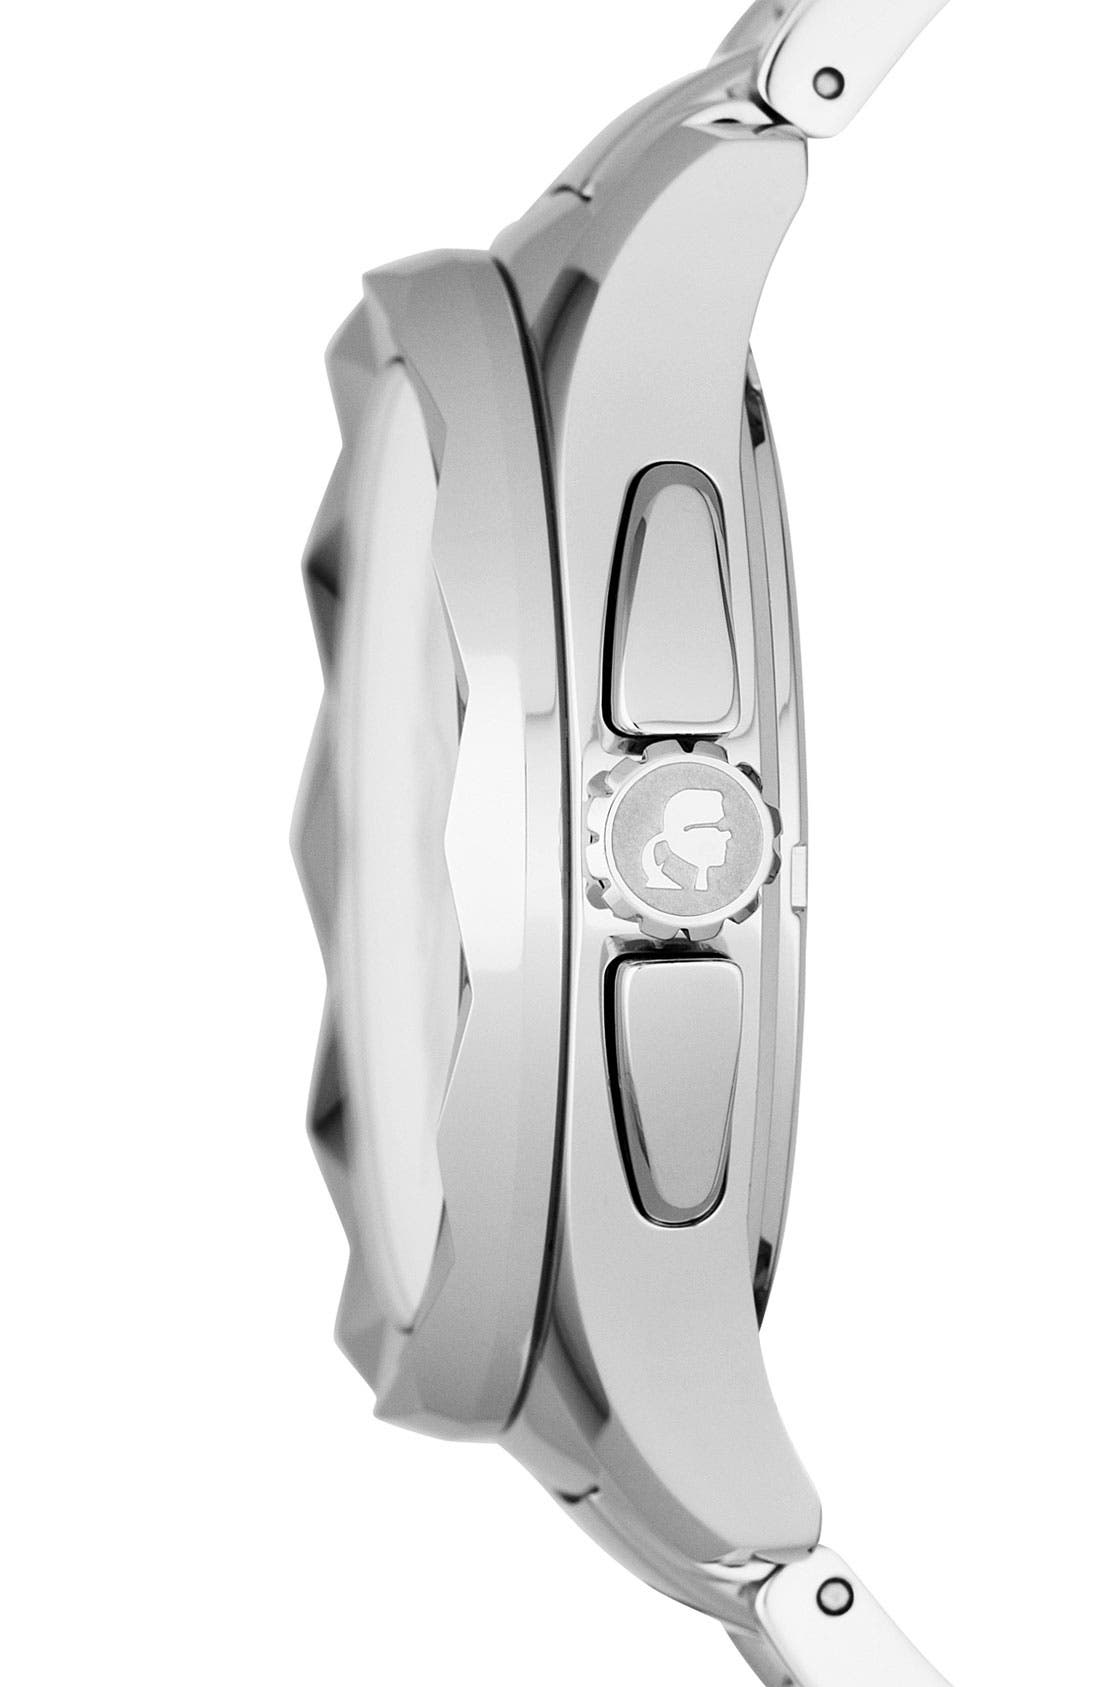 Alternate Image 3  - KARL LAGERFELD '7' Faceted Bezel Bracelet Watch, 44mm x 53mm